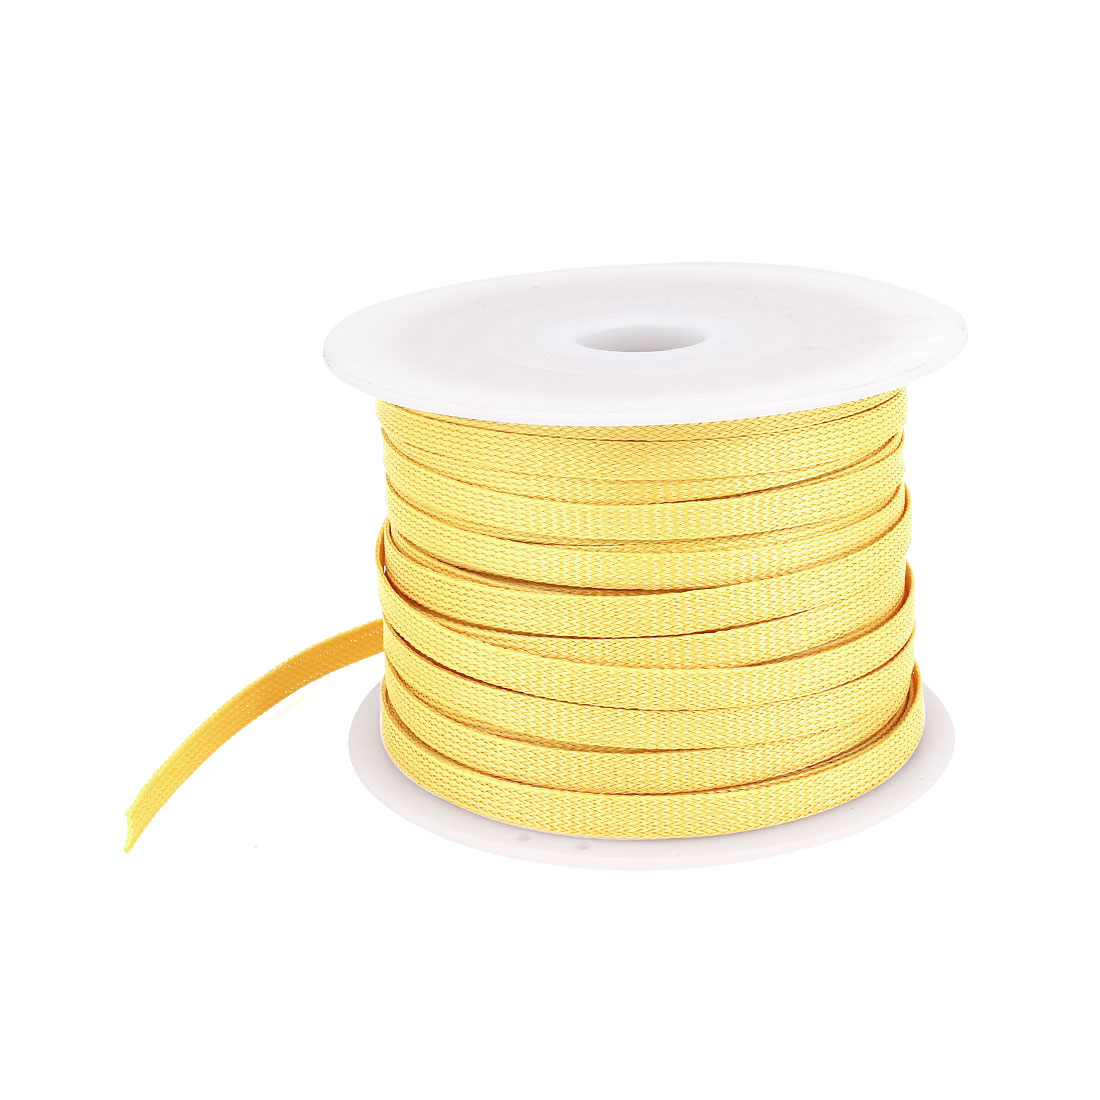 Unique Bargains Car Audio Braided Cable Wire Sheathing Sleeve Harness Orange 100m X 10mm